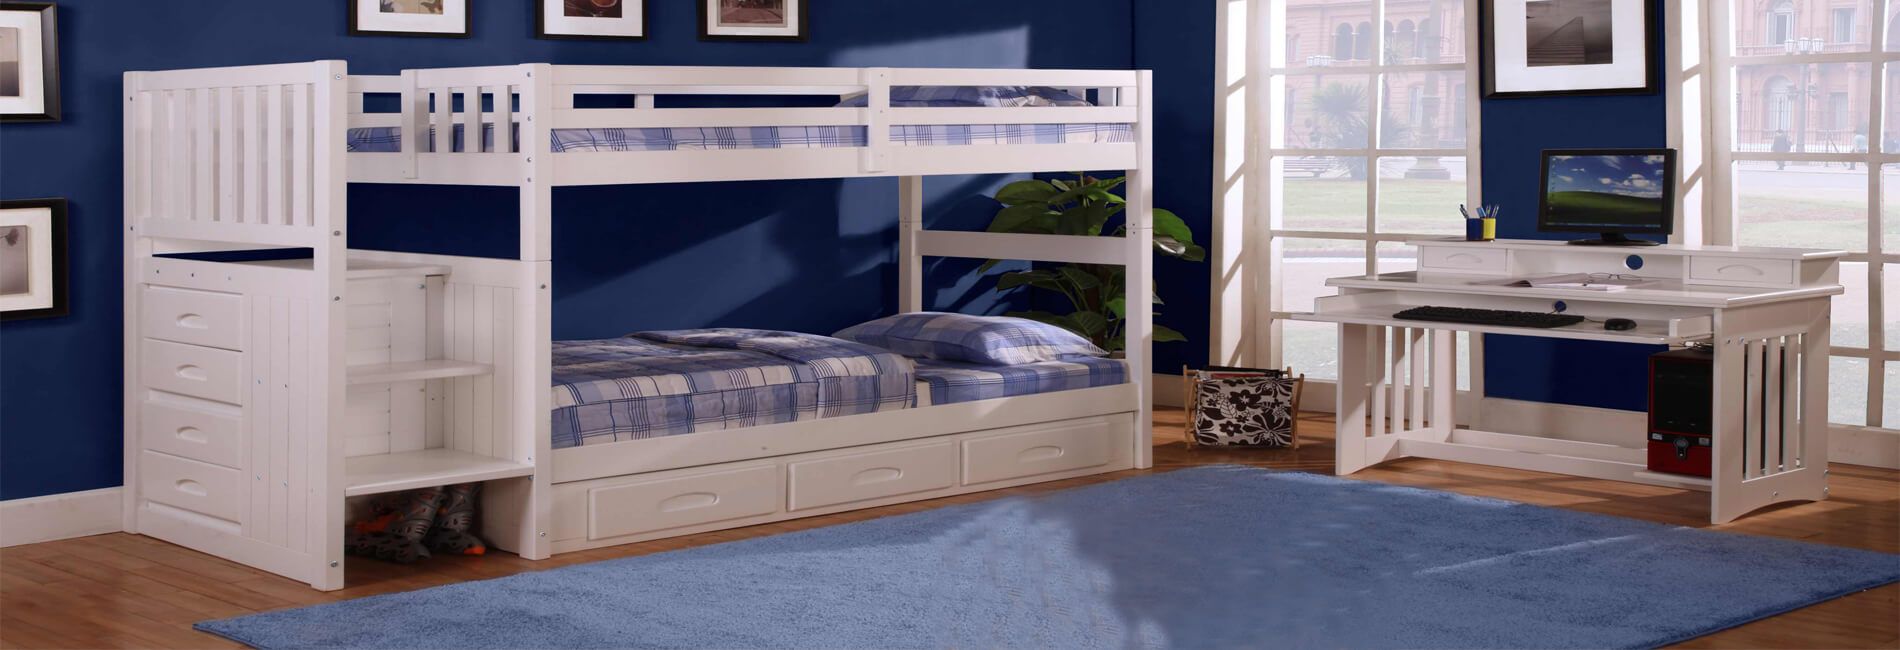 Picture of: Childrens Bunk Beds Kids Bunk Beds Childrens Loft Beds